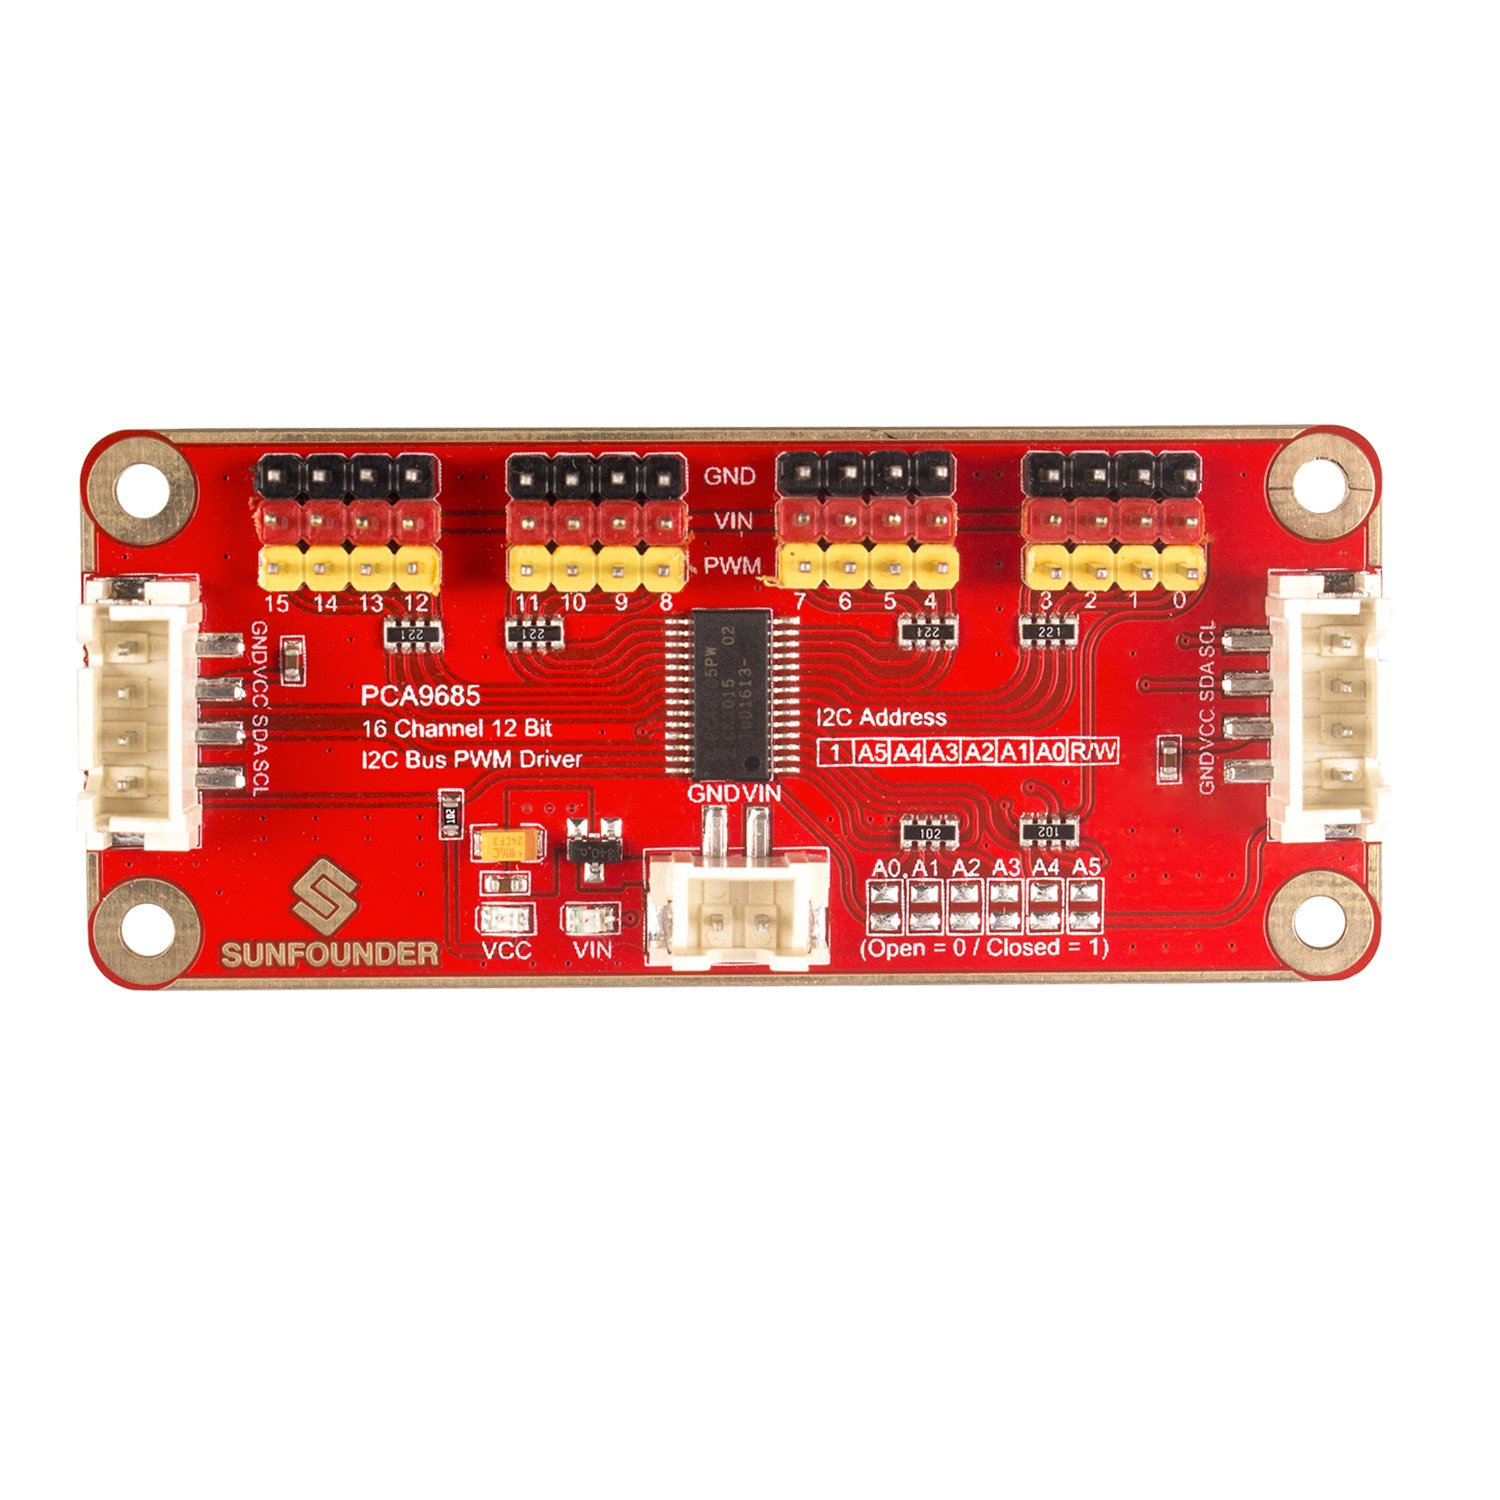 Cheap I2c Led Driver Find Deals On Line At Alibabacom Driving A Strip With Arduino Also Pwm Electronics Get Quotations Sunfounder 16 Channel 12 Bit Pca9685 Servo Shield For And Raspberry Pi